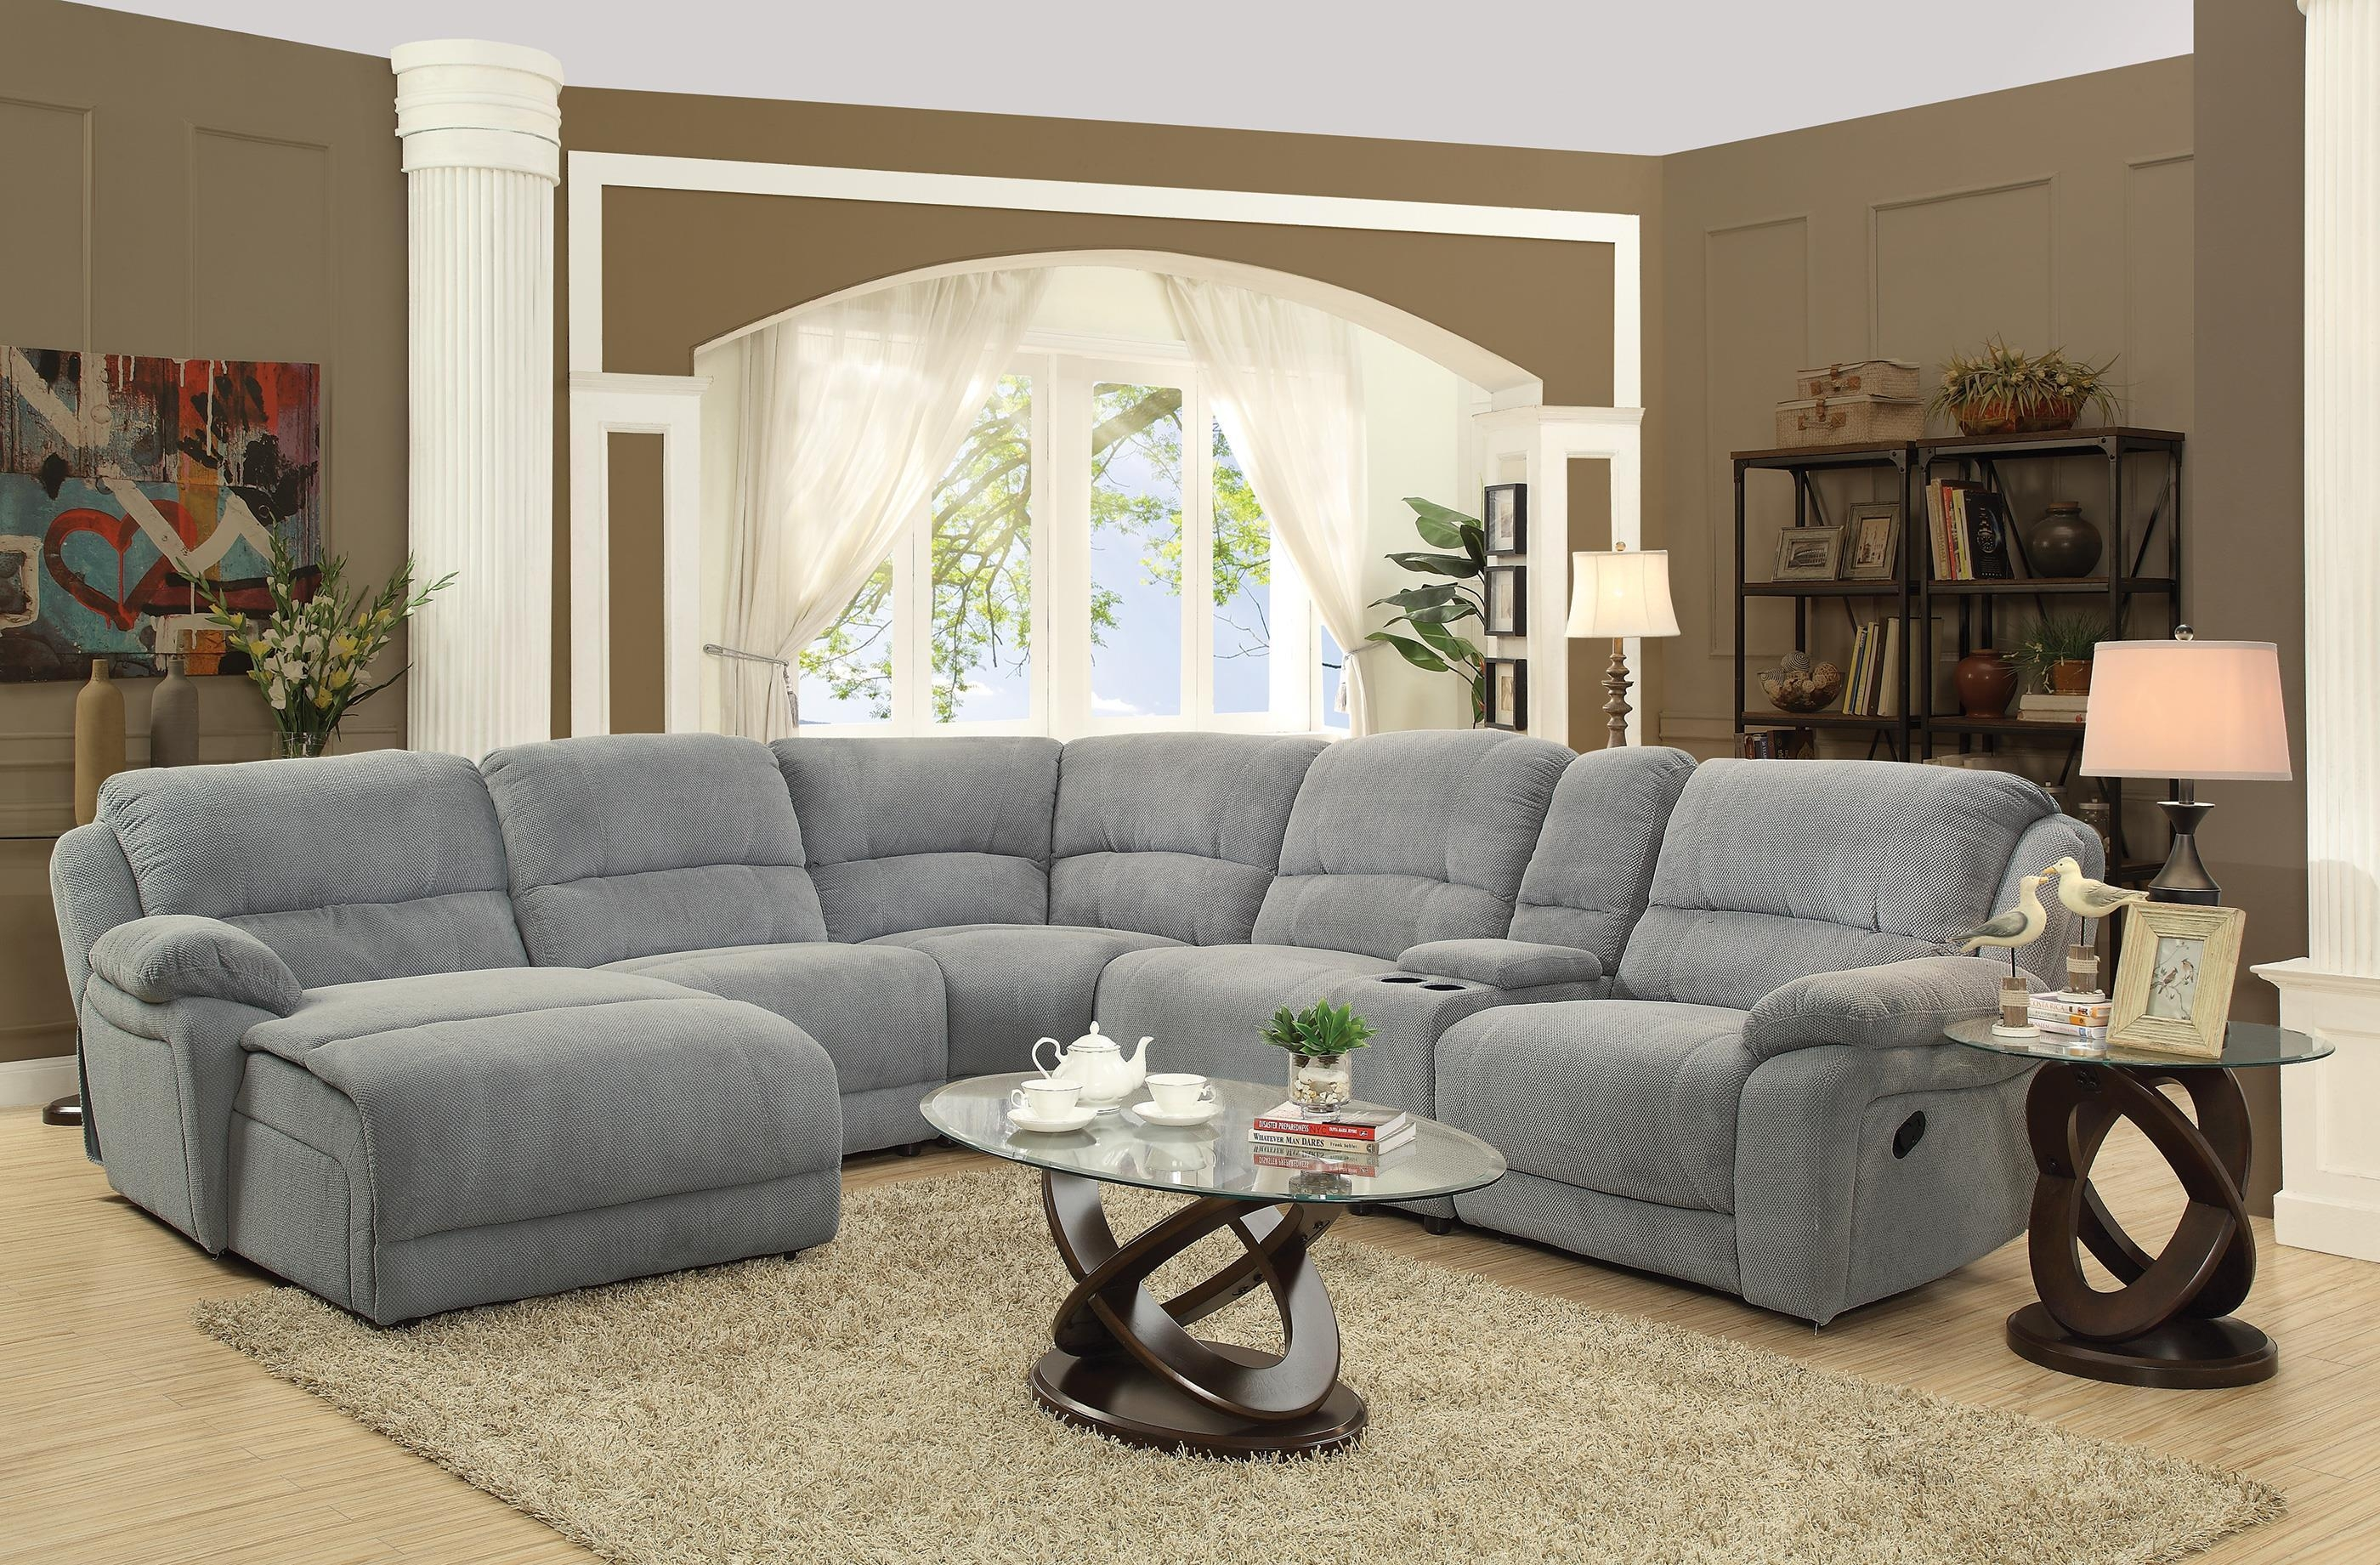 Coaster Mackenzie Silver 6 Piece Reclining Sectional Sofa With With 6 Piece Sectional Sofas Couches (Image 8 of 20)